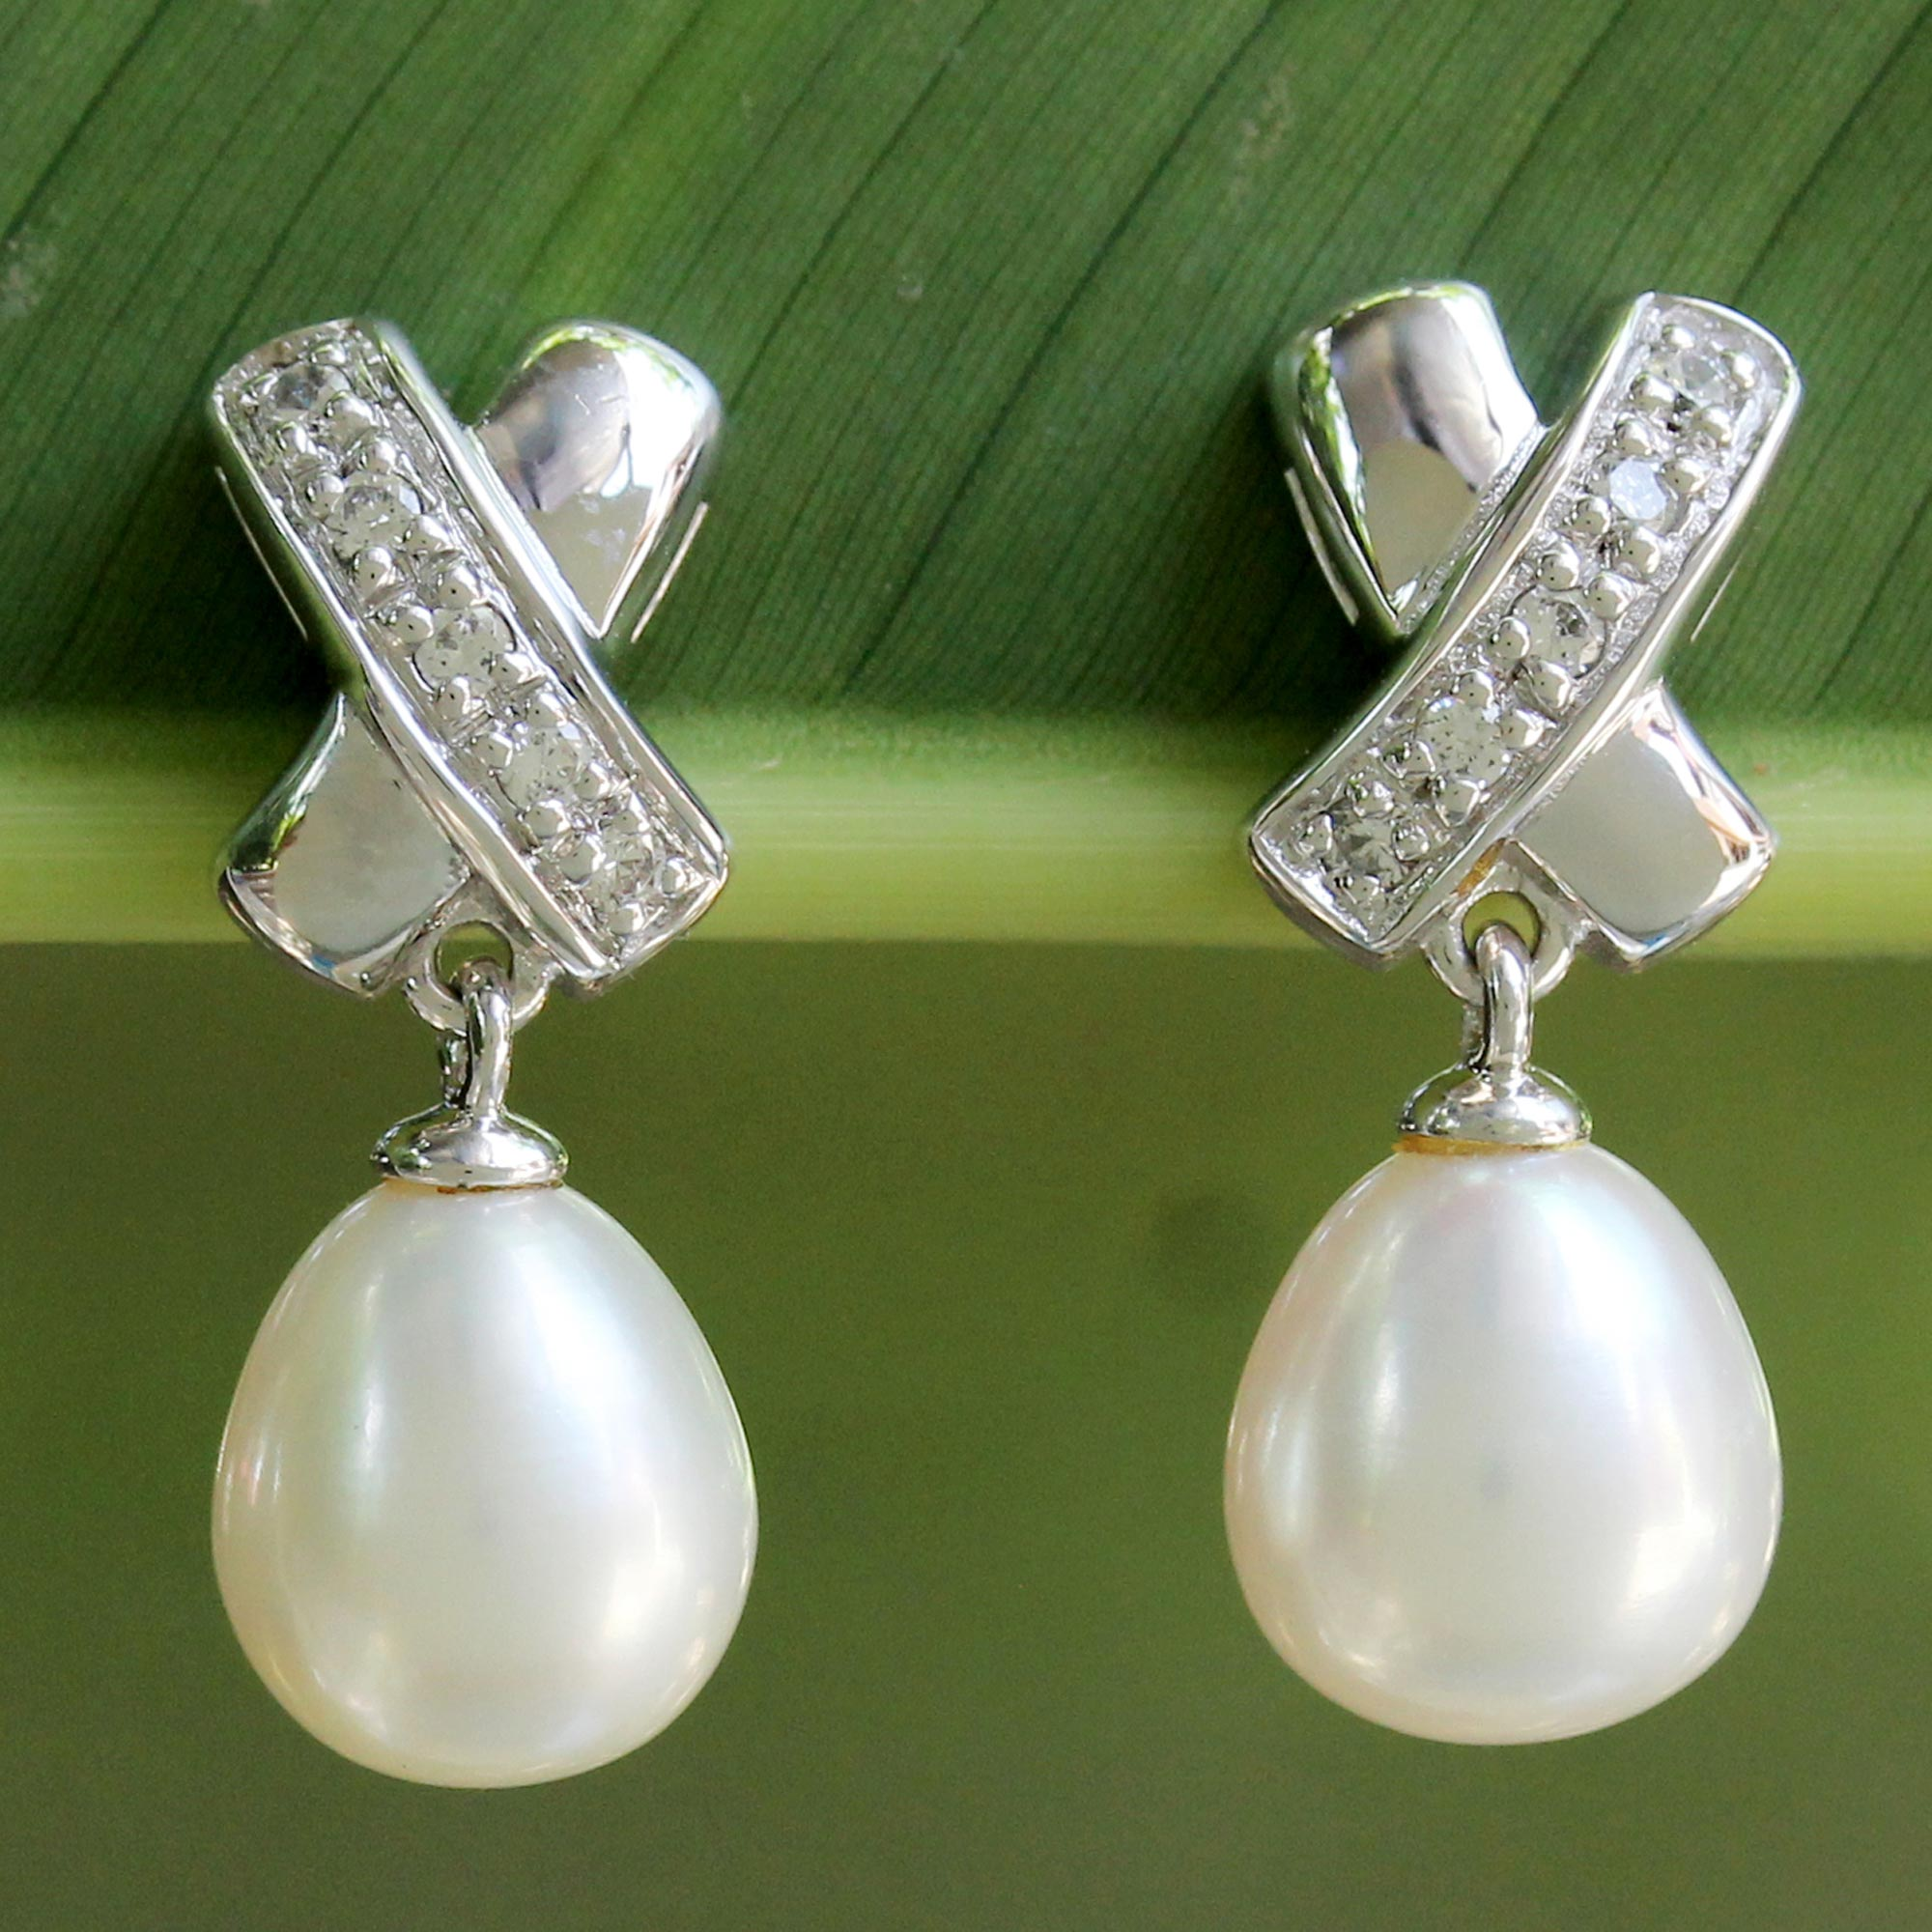 Pearl dangle earrings, 'Cross My Heart' sterling silver posts wedding day jewelry